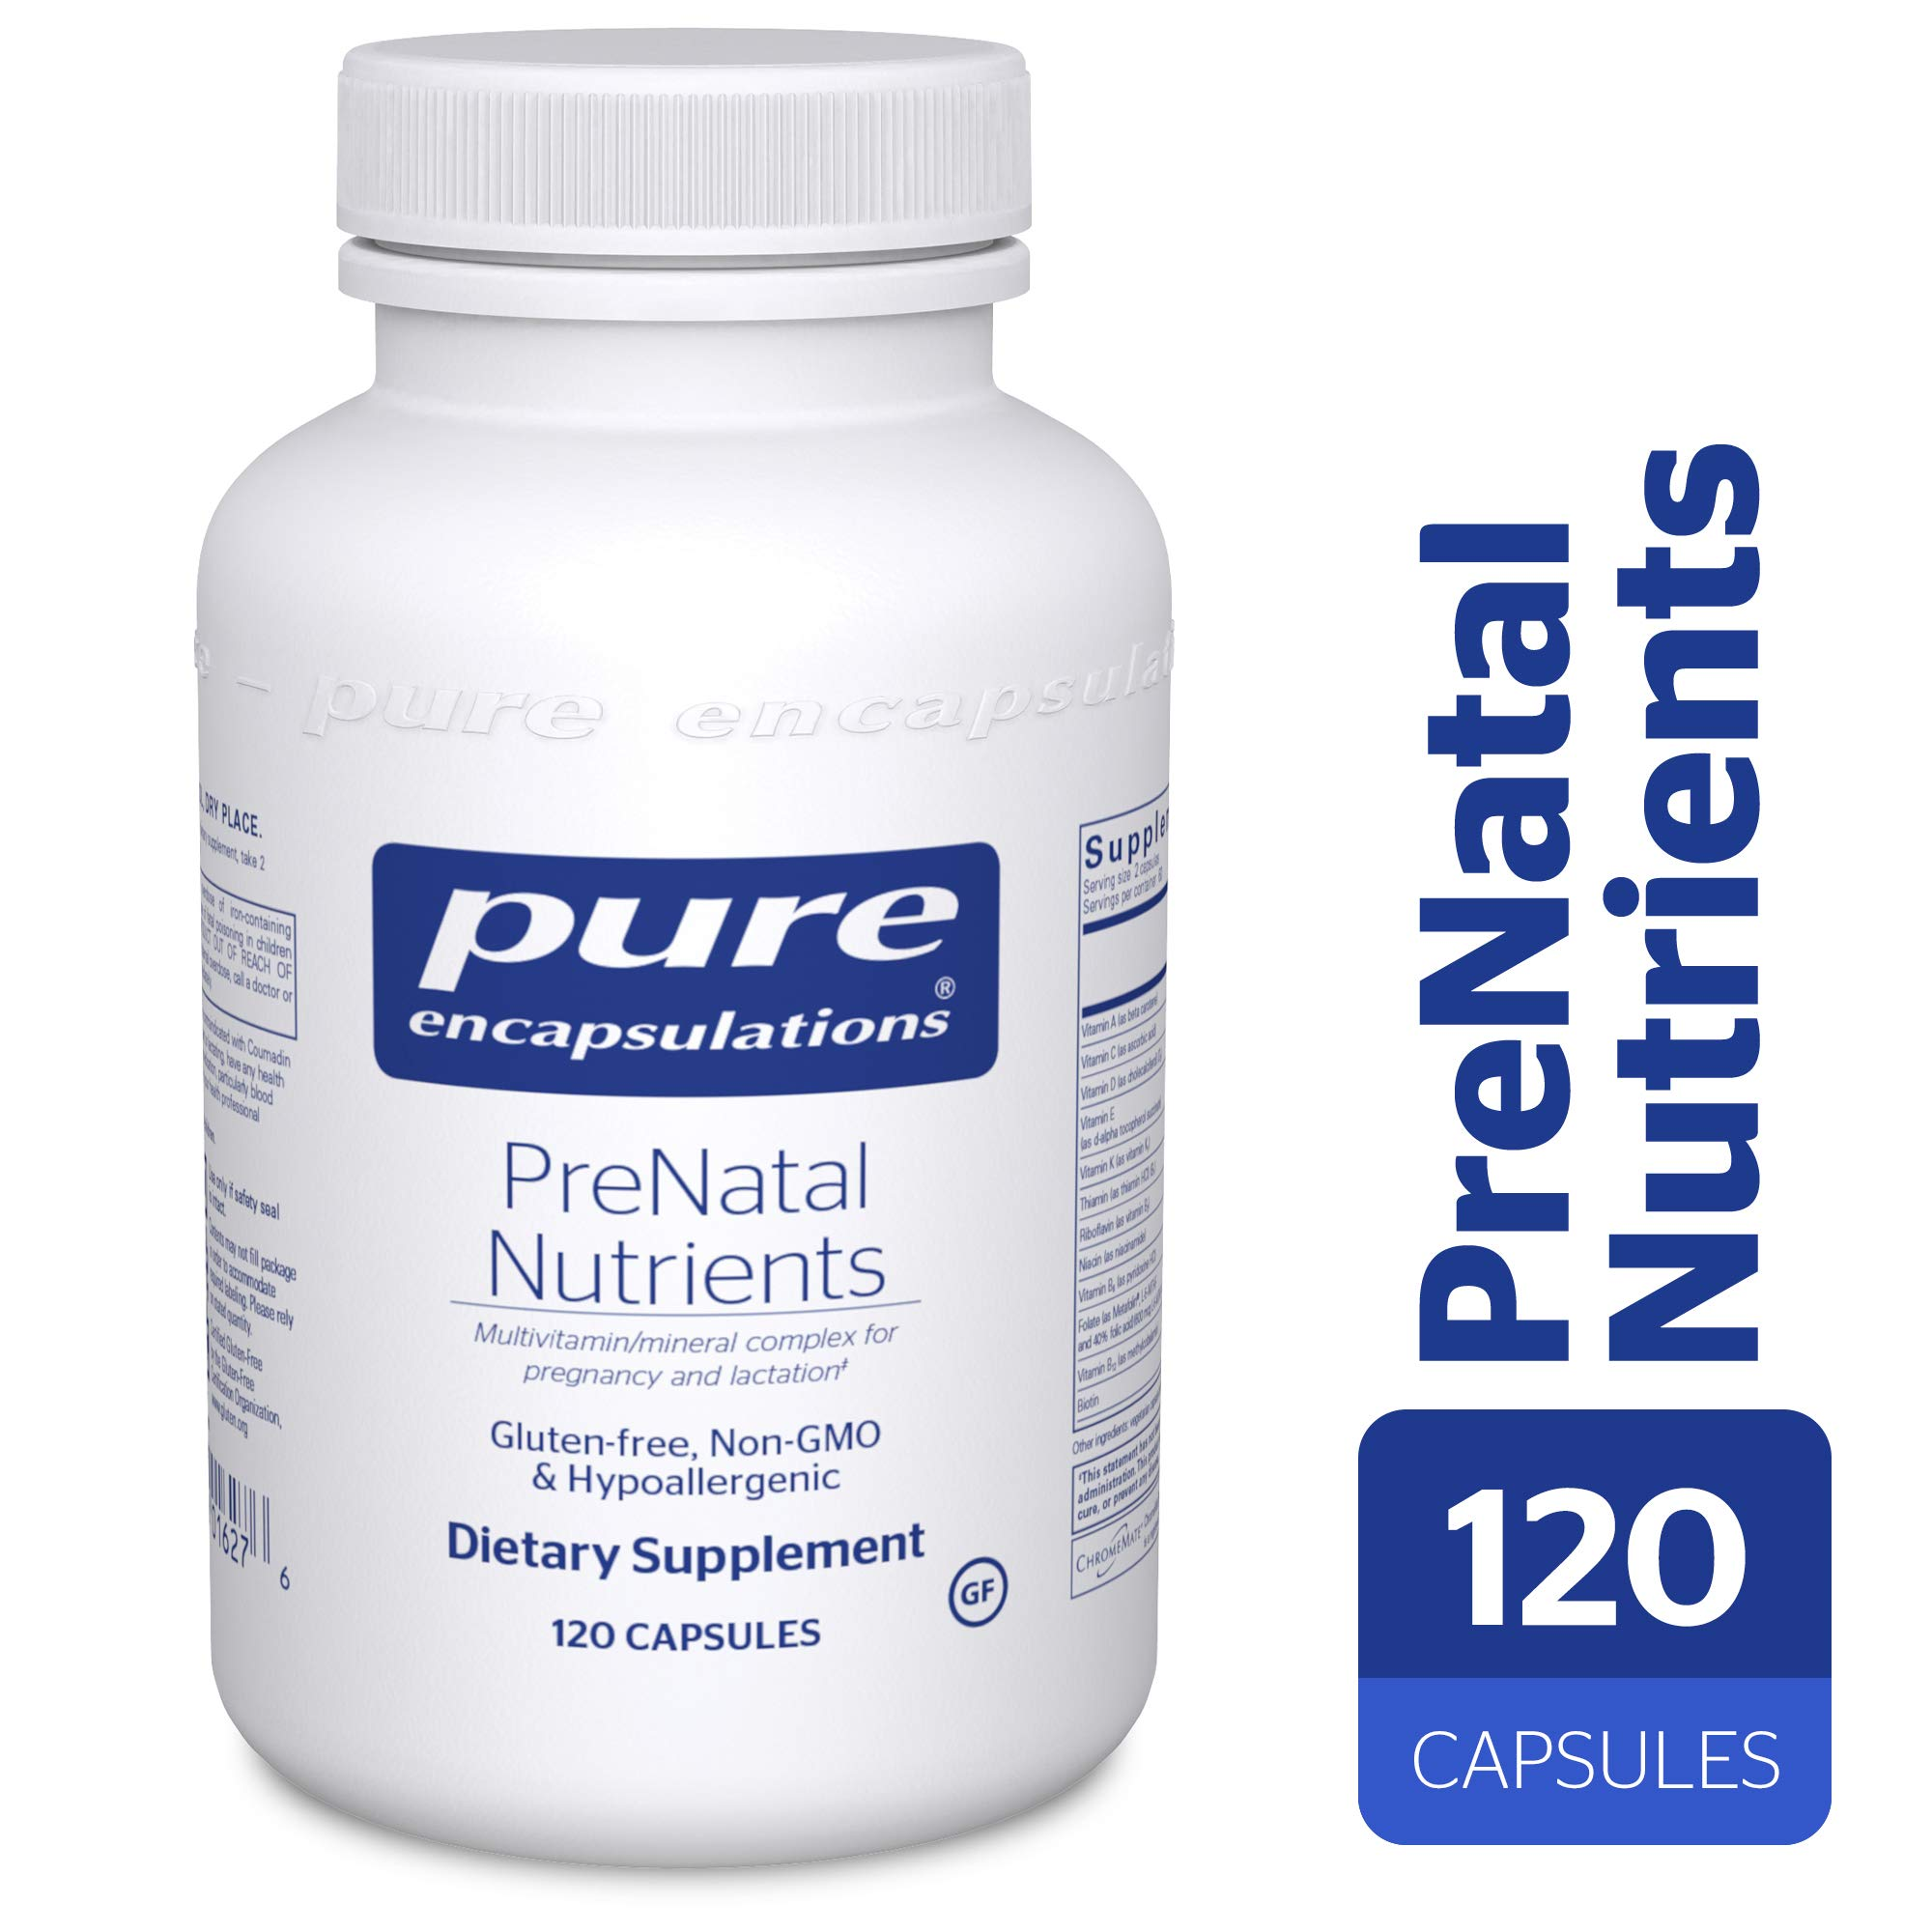 Pure Encapsulations - PreNatal Nutrients - Hypoallergenic Nutritional Support for Pregnancy and Lactation* - 120 Capsules by Pure Encapsulations